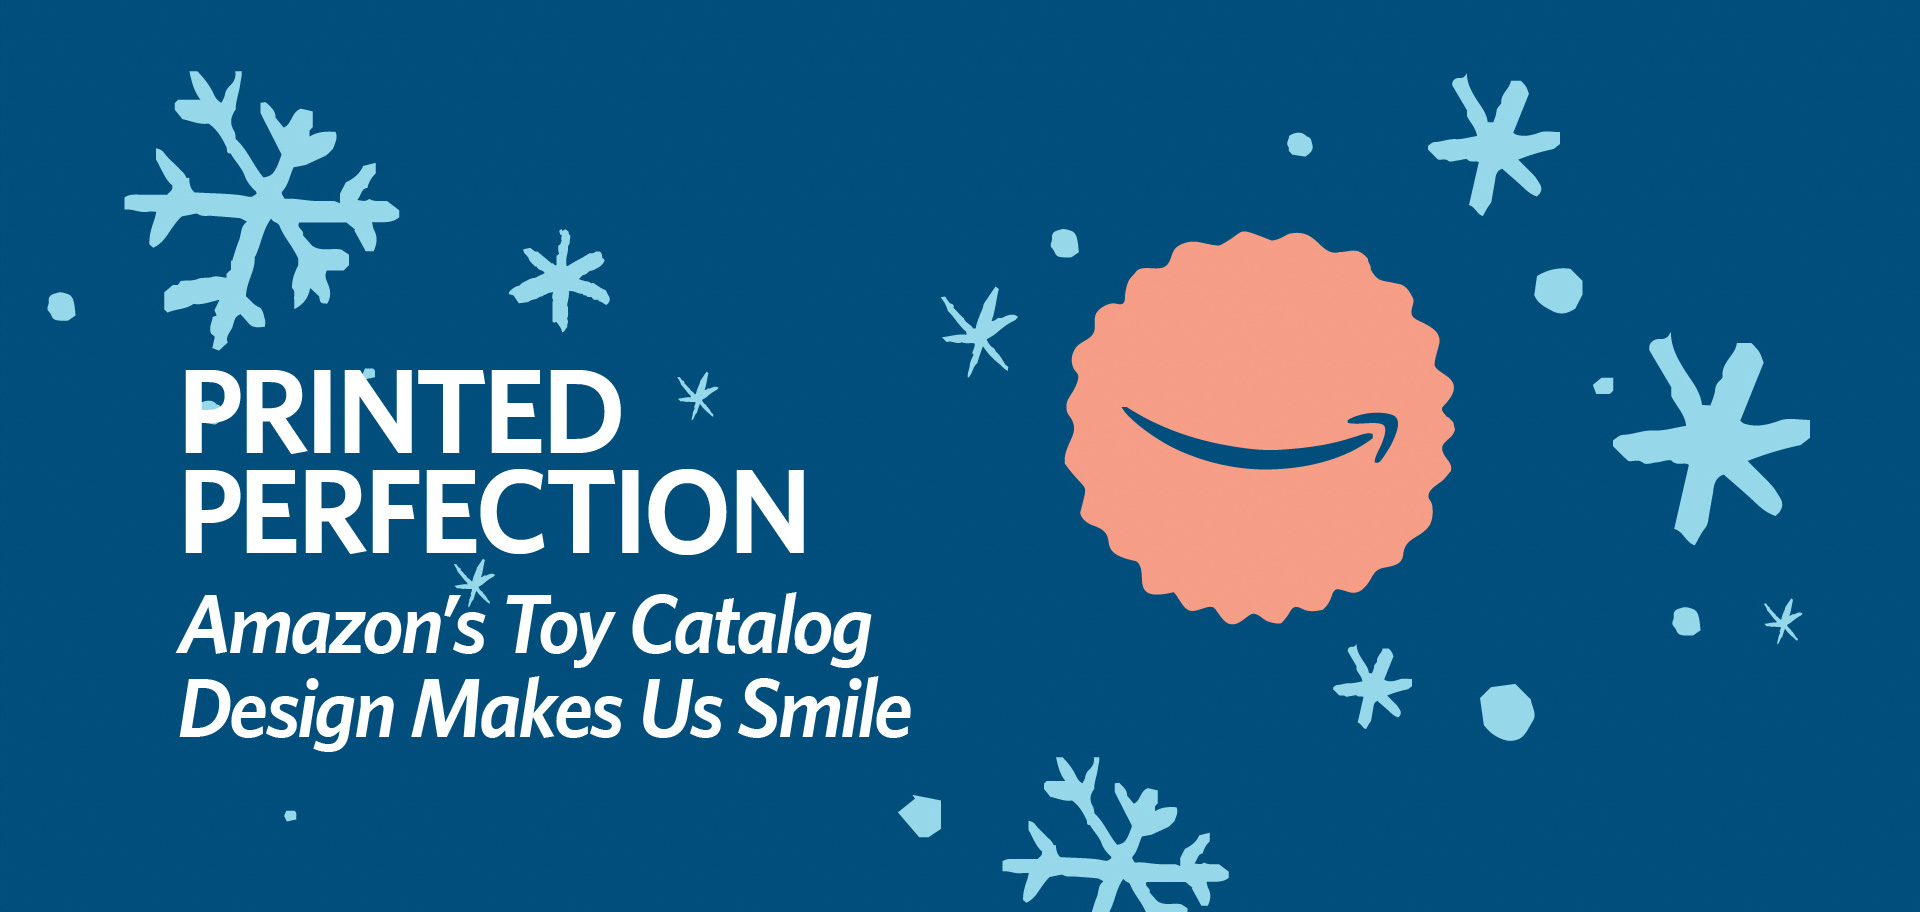 Printed Perfection: Amazon's Toy Catalog Design Makes Us Smile by Kettle Fire Creative catalog design Printed Perfection: Amazon's Toy Catalog Design Makes Us Smile amazon catalog fi